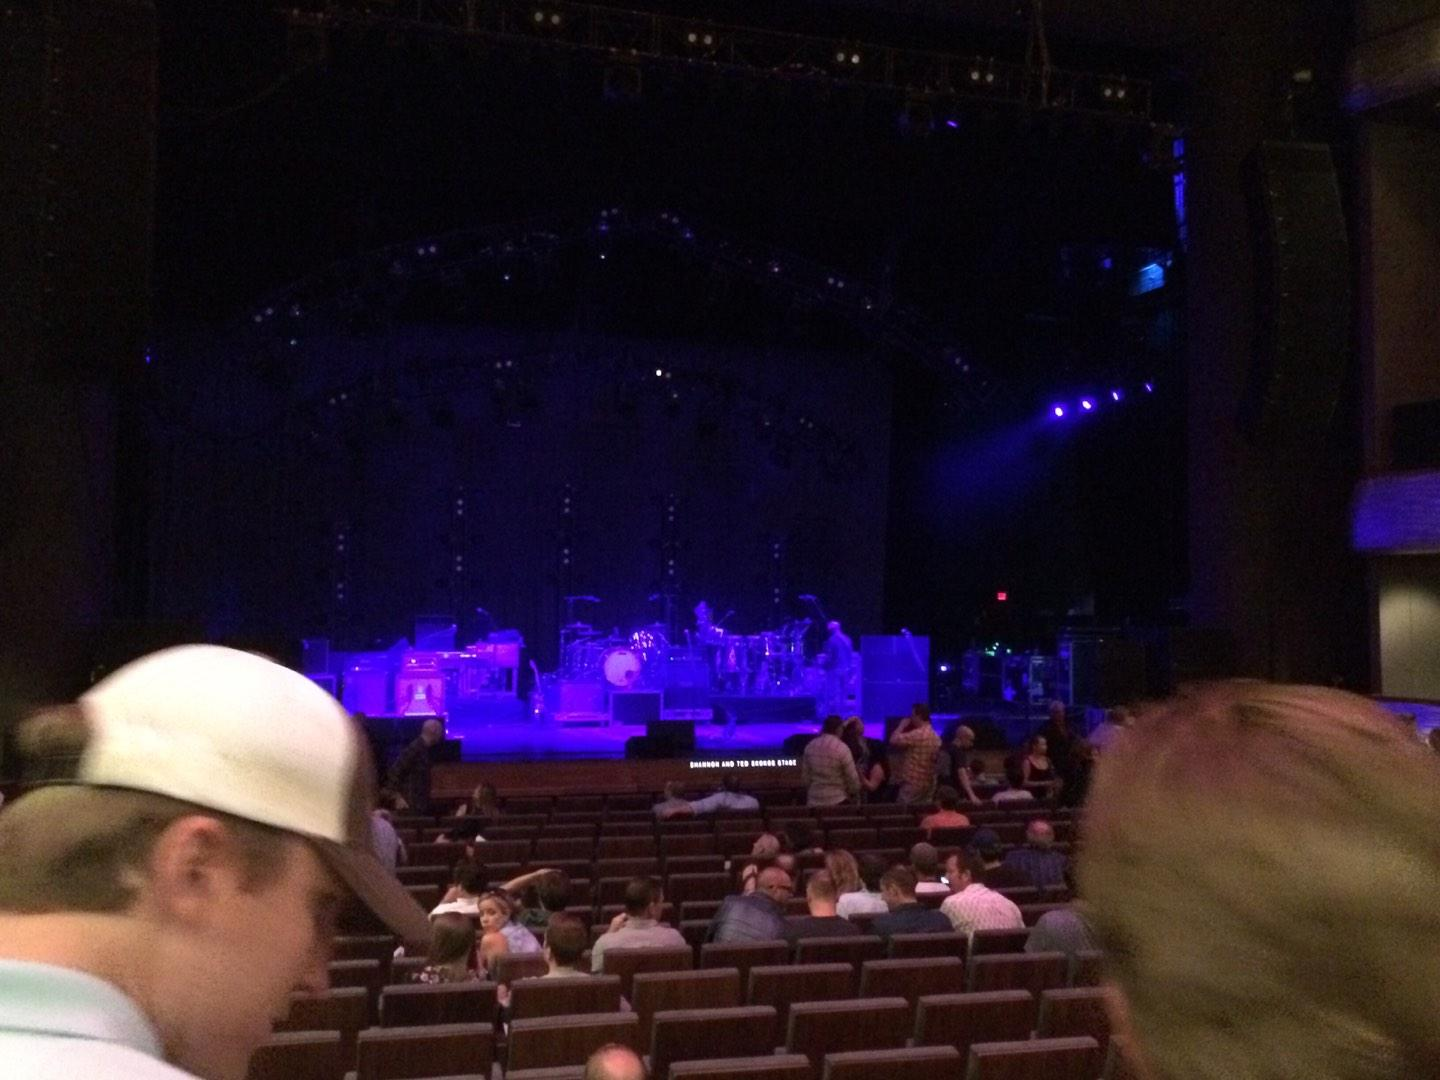 Winspear Opera House Section Orc C Row N Seat 3